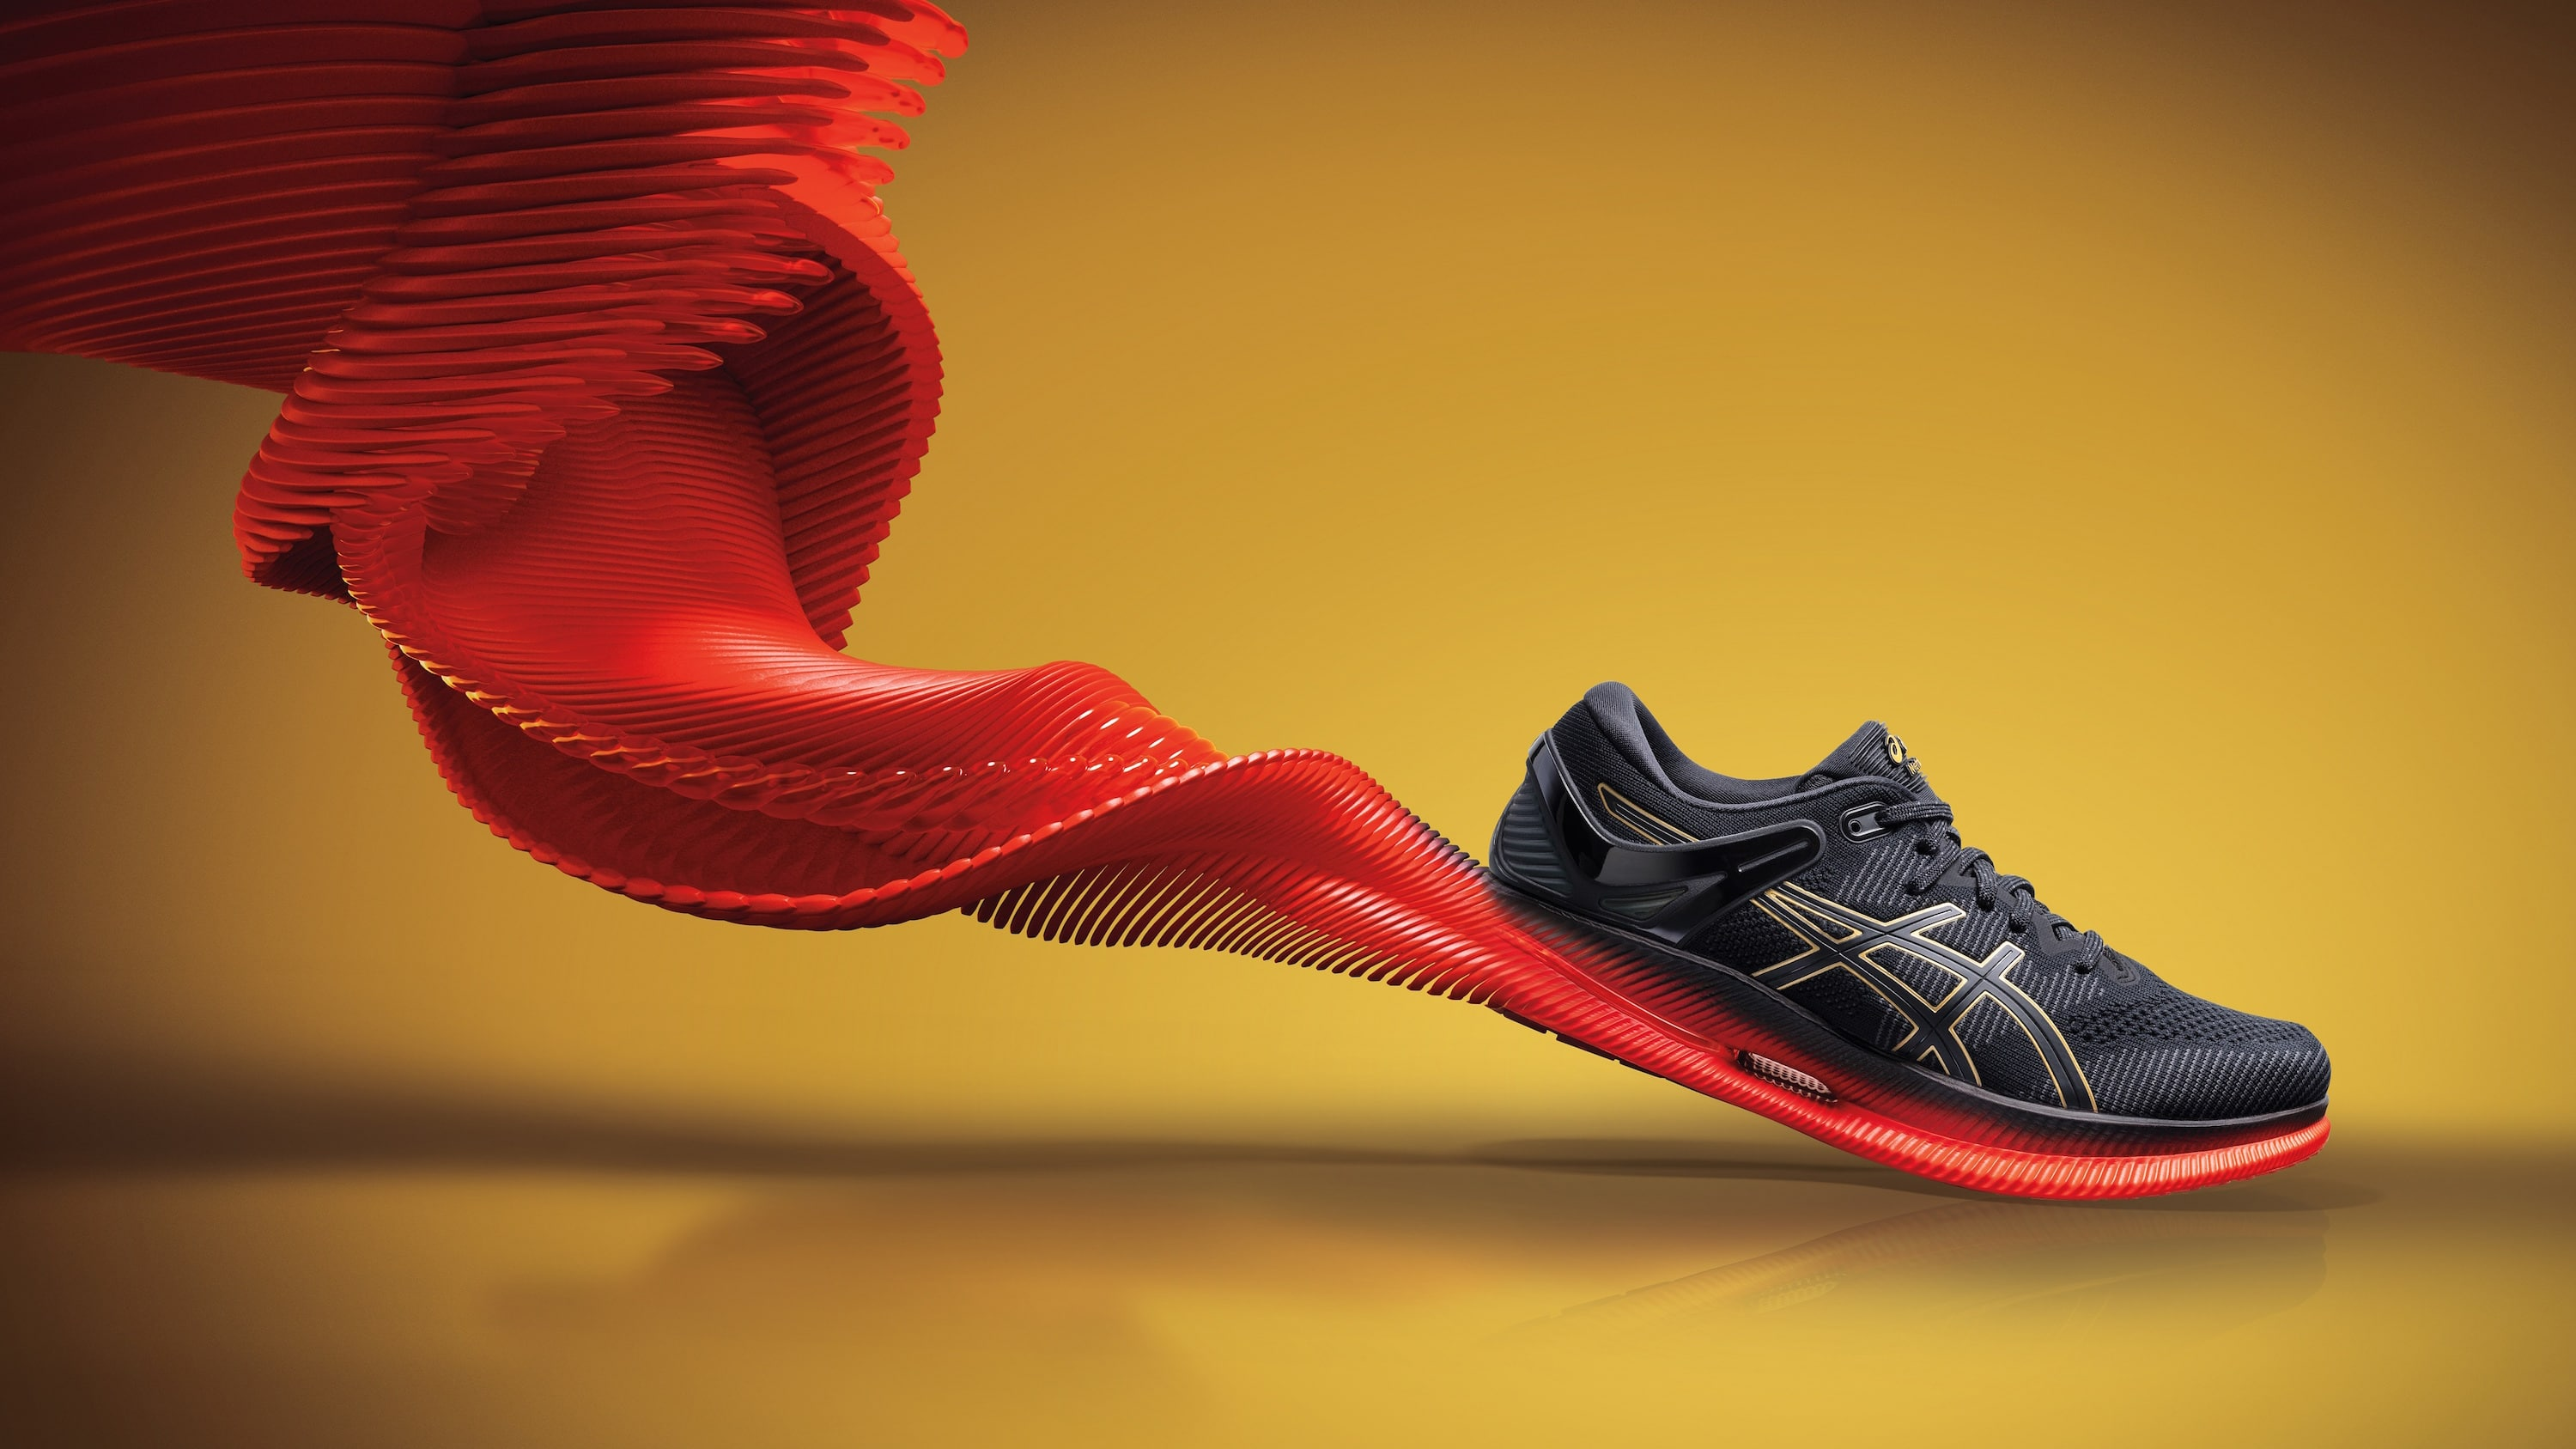 Photo-1-ASICS-launches-Metaride-shoes-claimed-to-save-energy-for-runne...